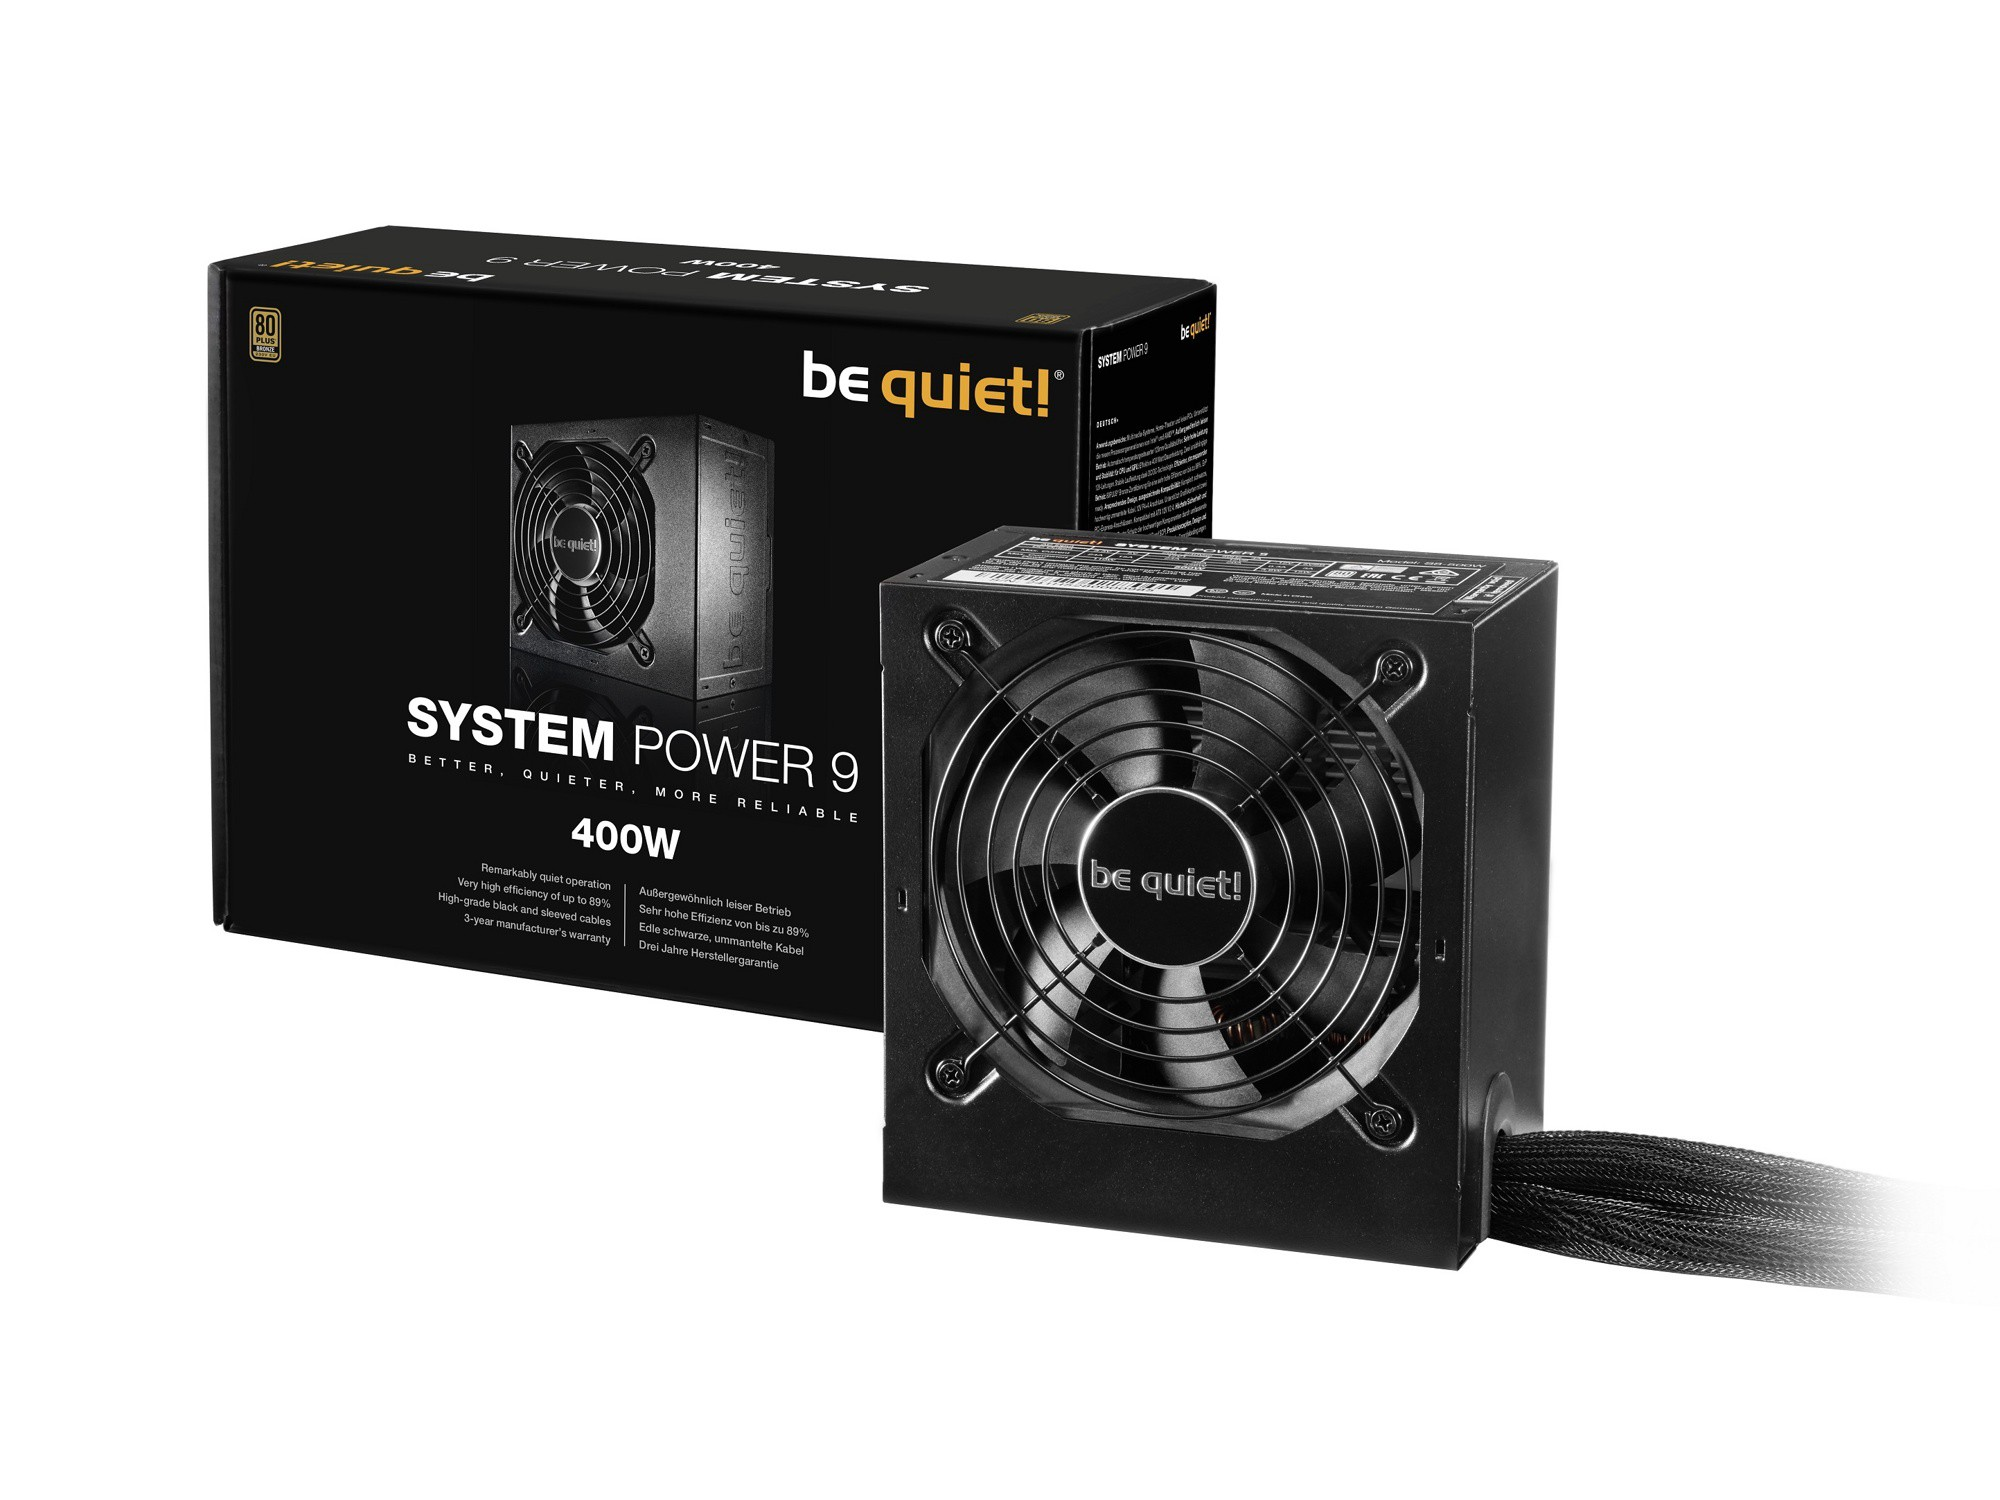 Блок питания 400W be quiet! System Power 9 (BN245) (24+8pin, 2x6/8pin, 2xMolex, 5xSATA, 80+ Bronze)